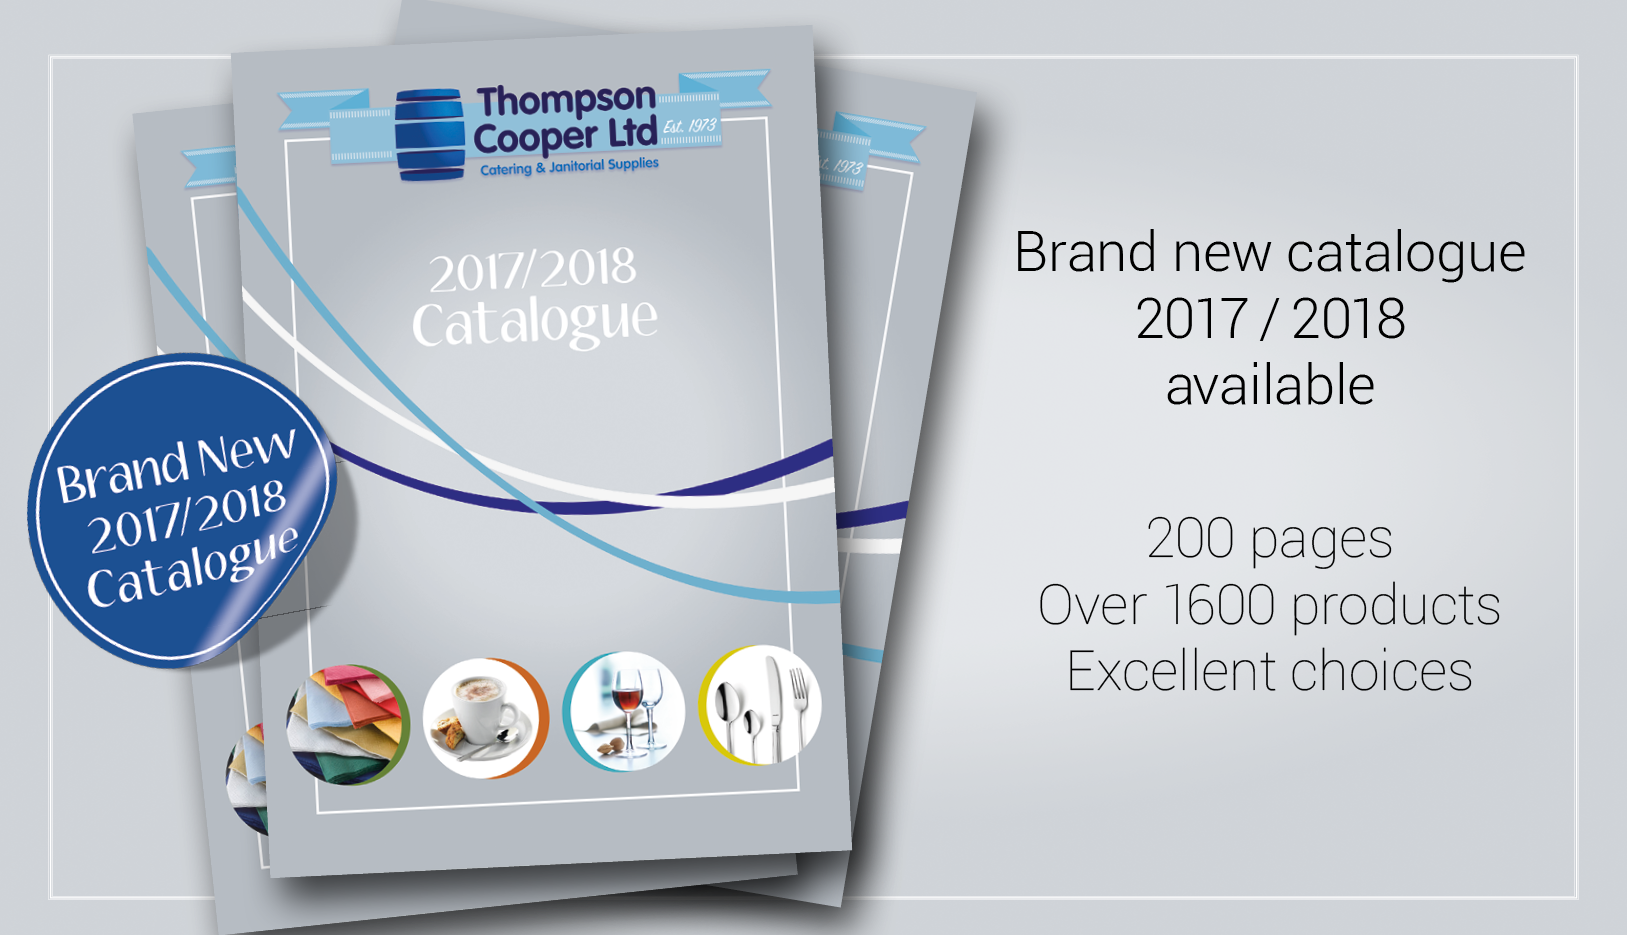 Brand New Catalogue 2017/2018